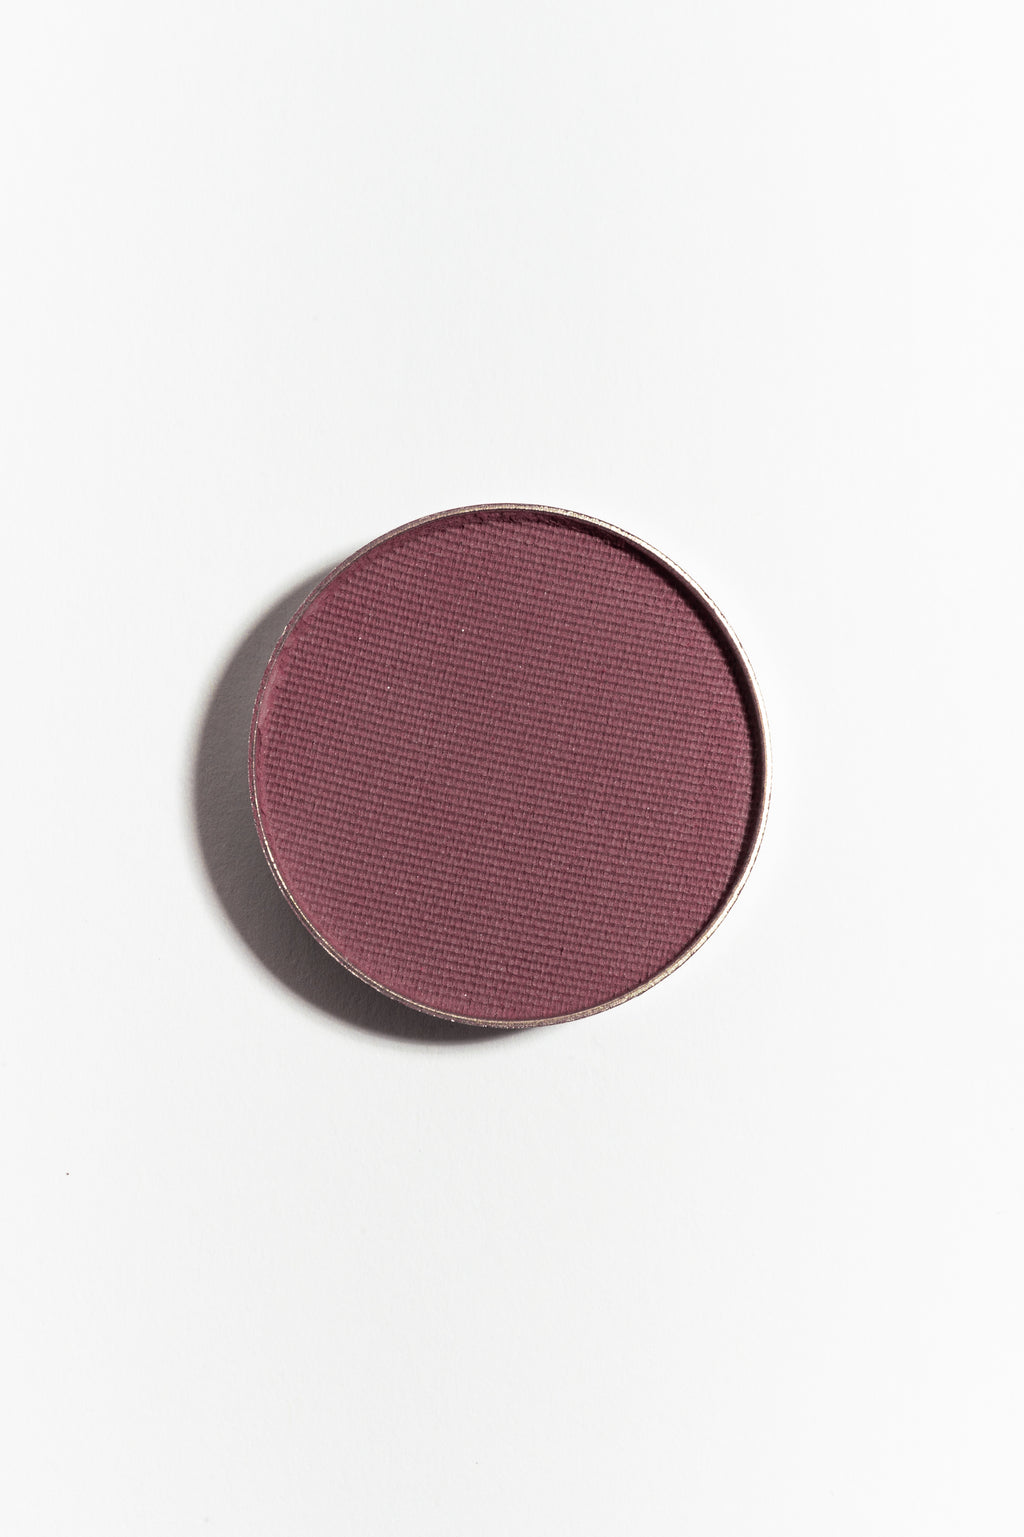 Eye shadow pan in Earthly Wine